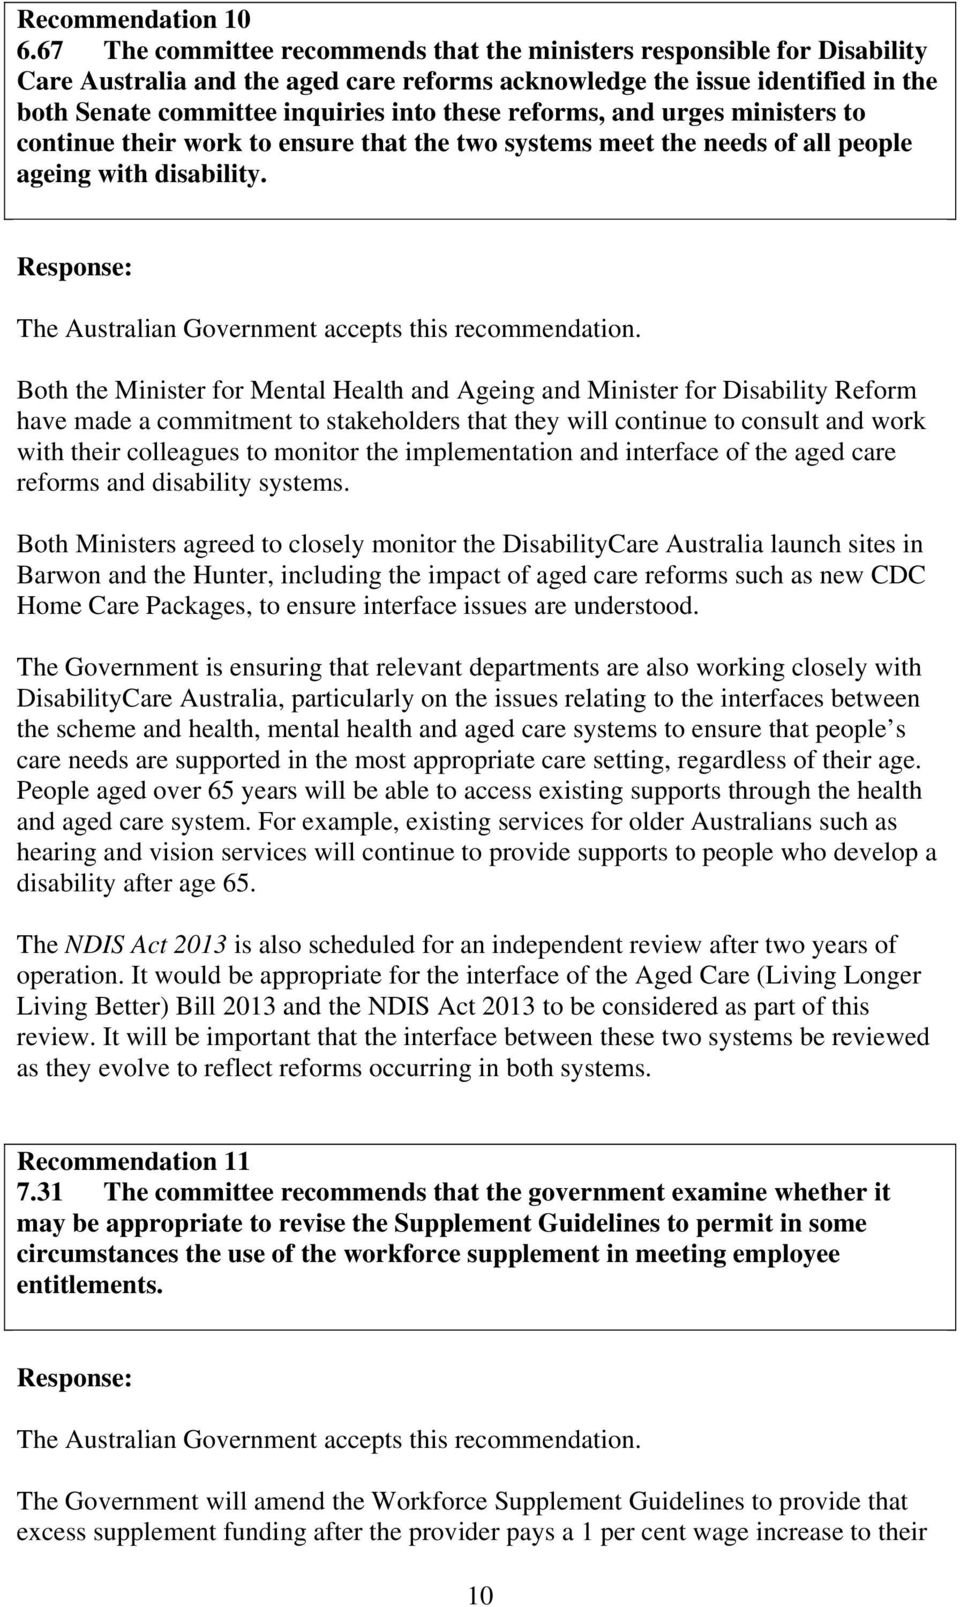 reforms, and urges ministers to continue their work to ensure that the two systems meet the needs of all people ageing with disability.